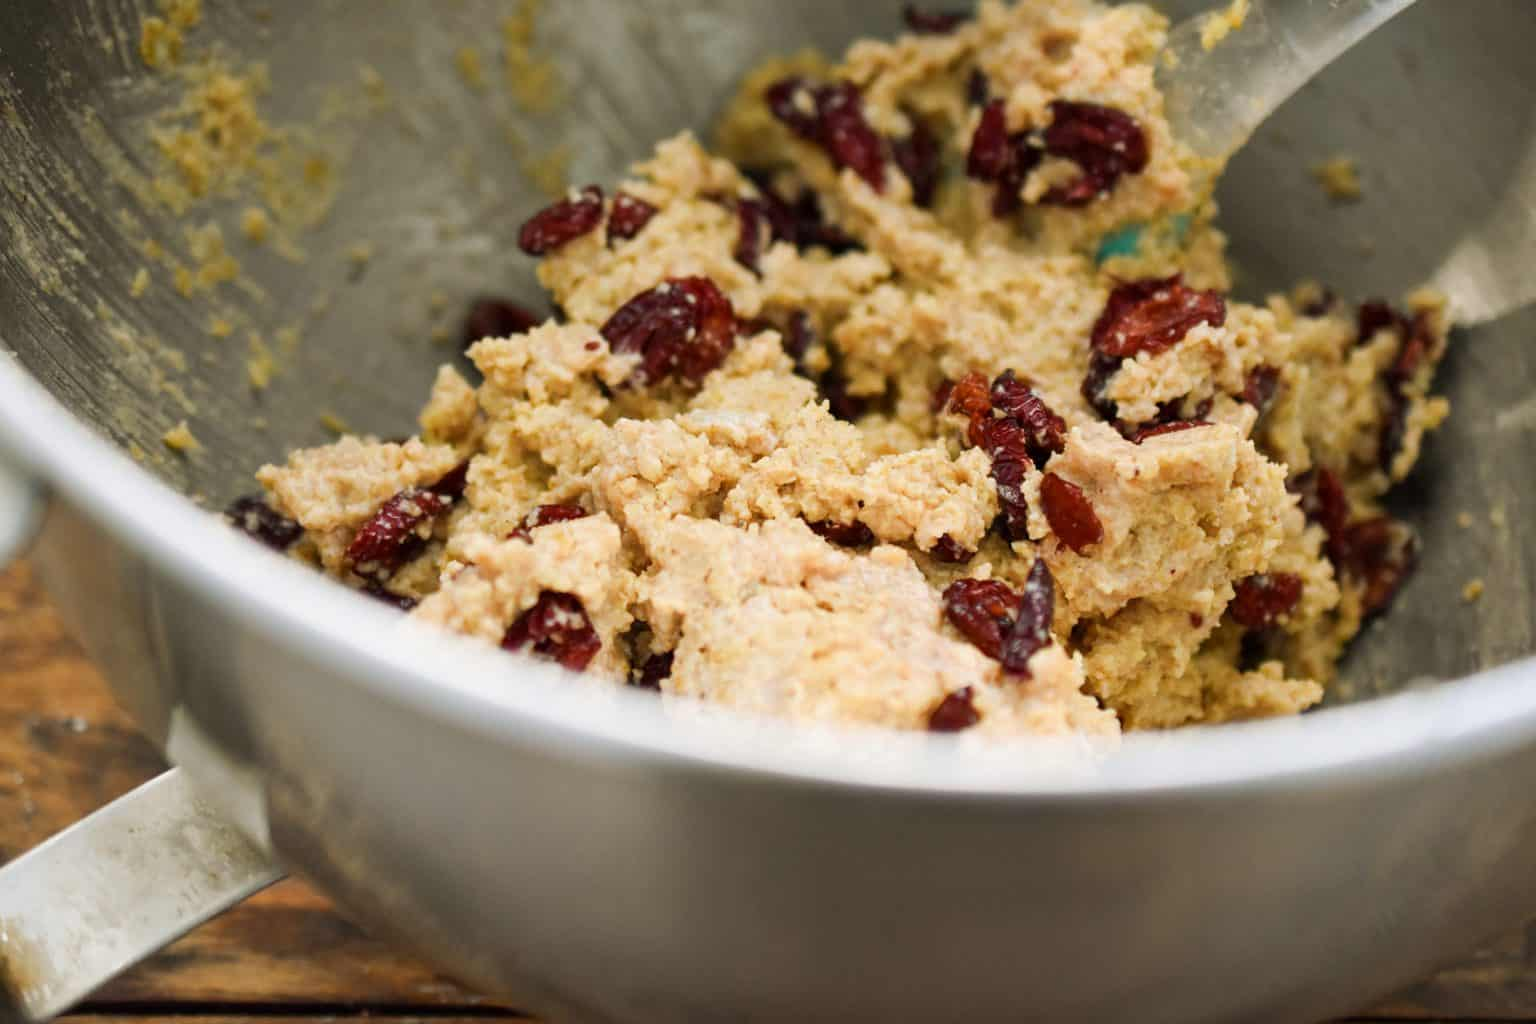 keto oatmeal cranberry cookie dough in a metal mixing bowl